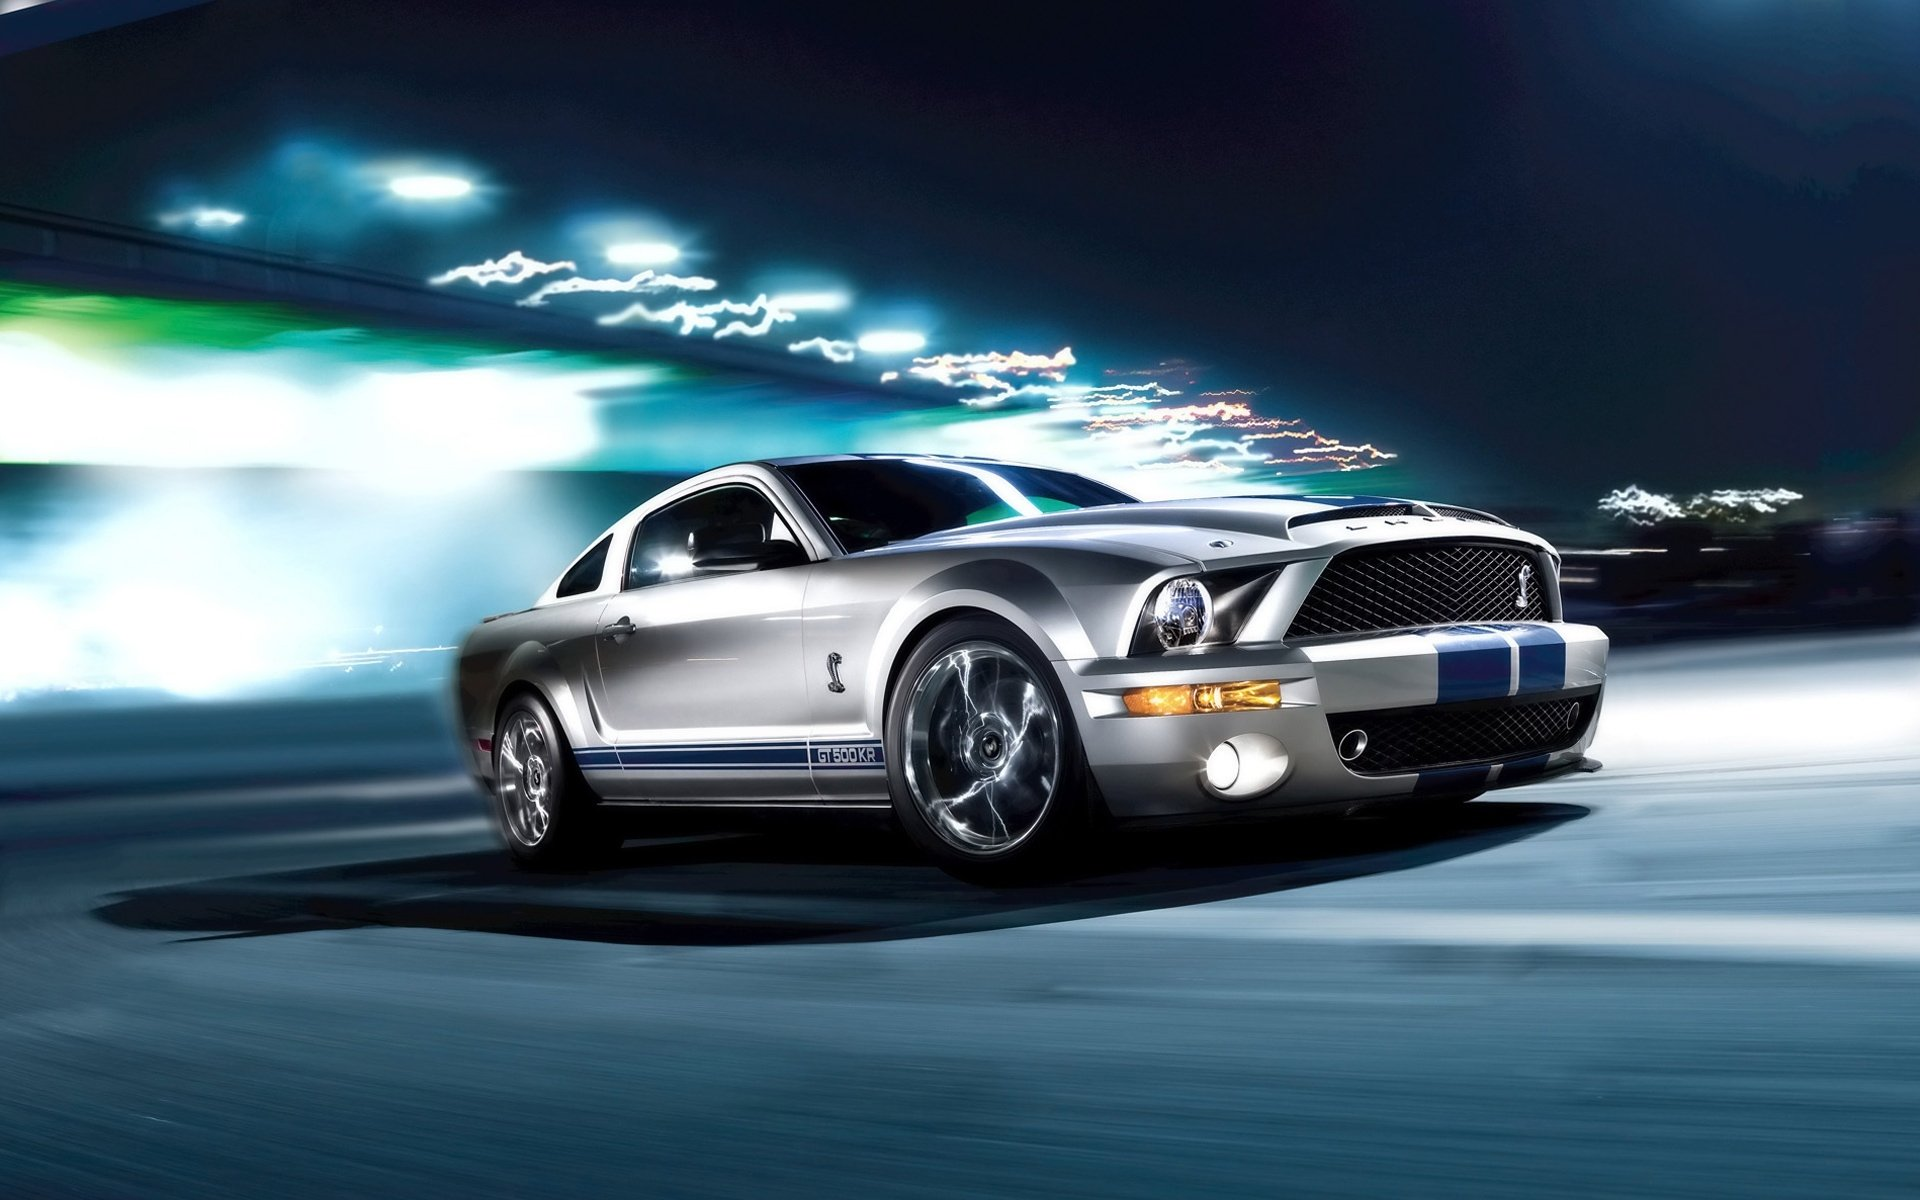 94 ford mustang shelby gt500 hd wallpapers background images wallpaper abyss